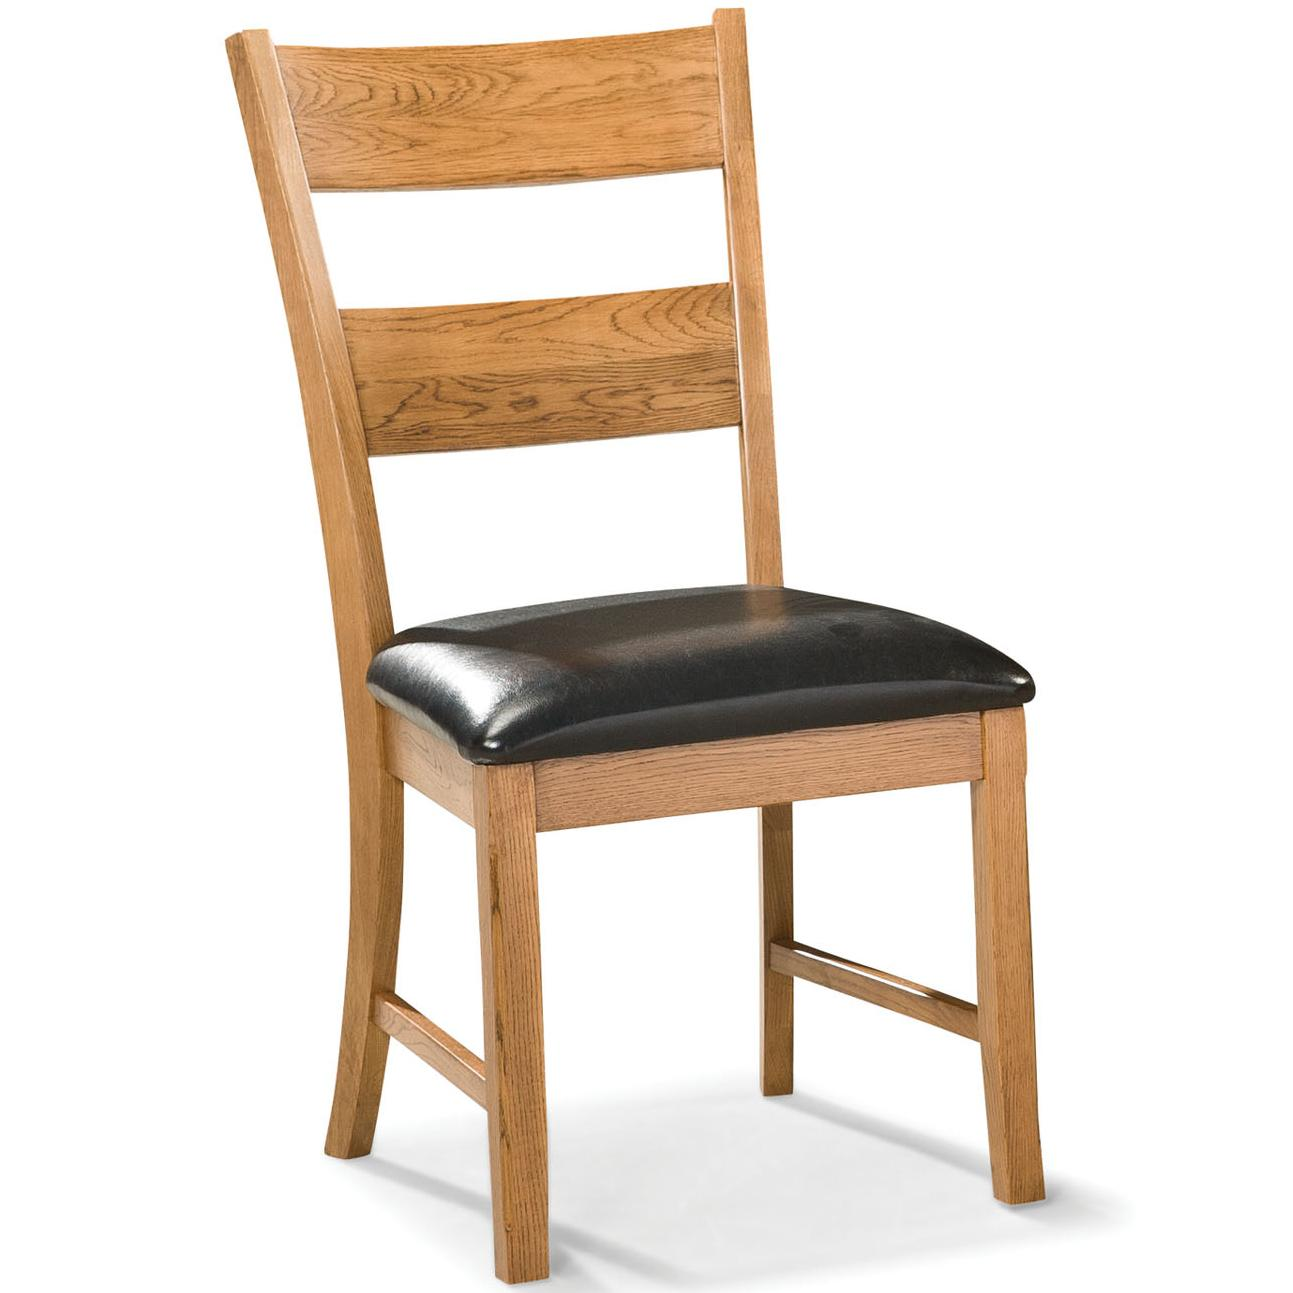 Family Dining Dining Chair with Ladder Back by Intercon at Dinette Depot